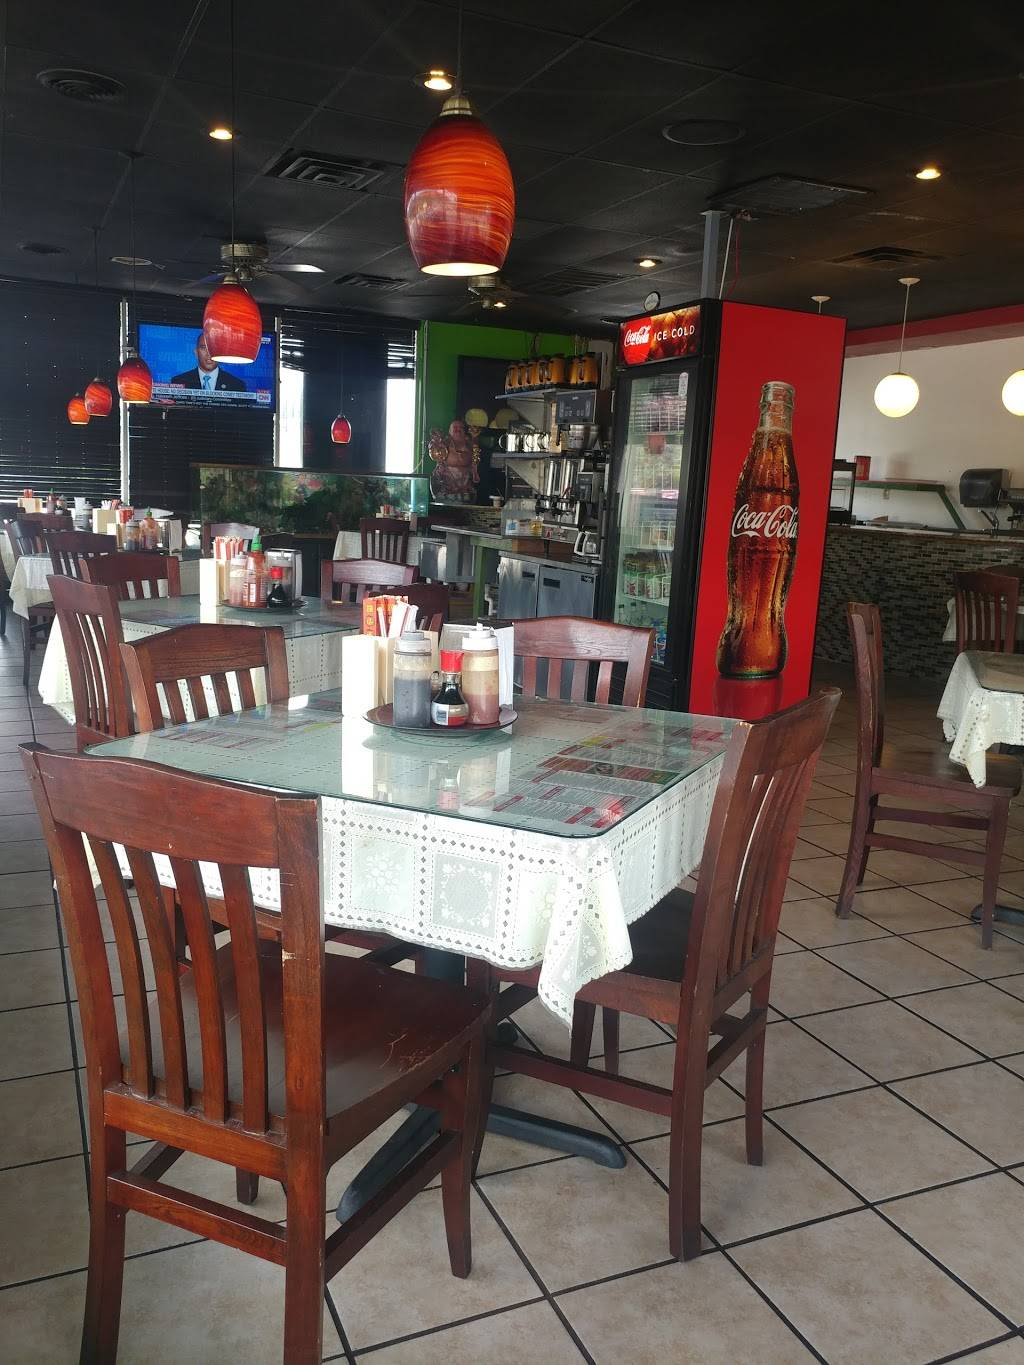 Bucks of Asia | restaurant | 2141 N College Ave, Fayetteville, AR 72703, USA | 4793324355 OR +1 479-332-4355